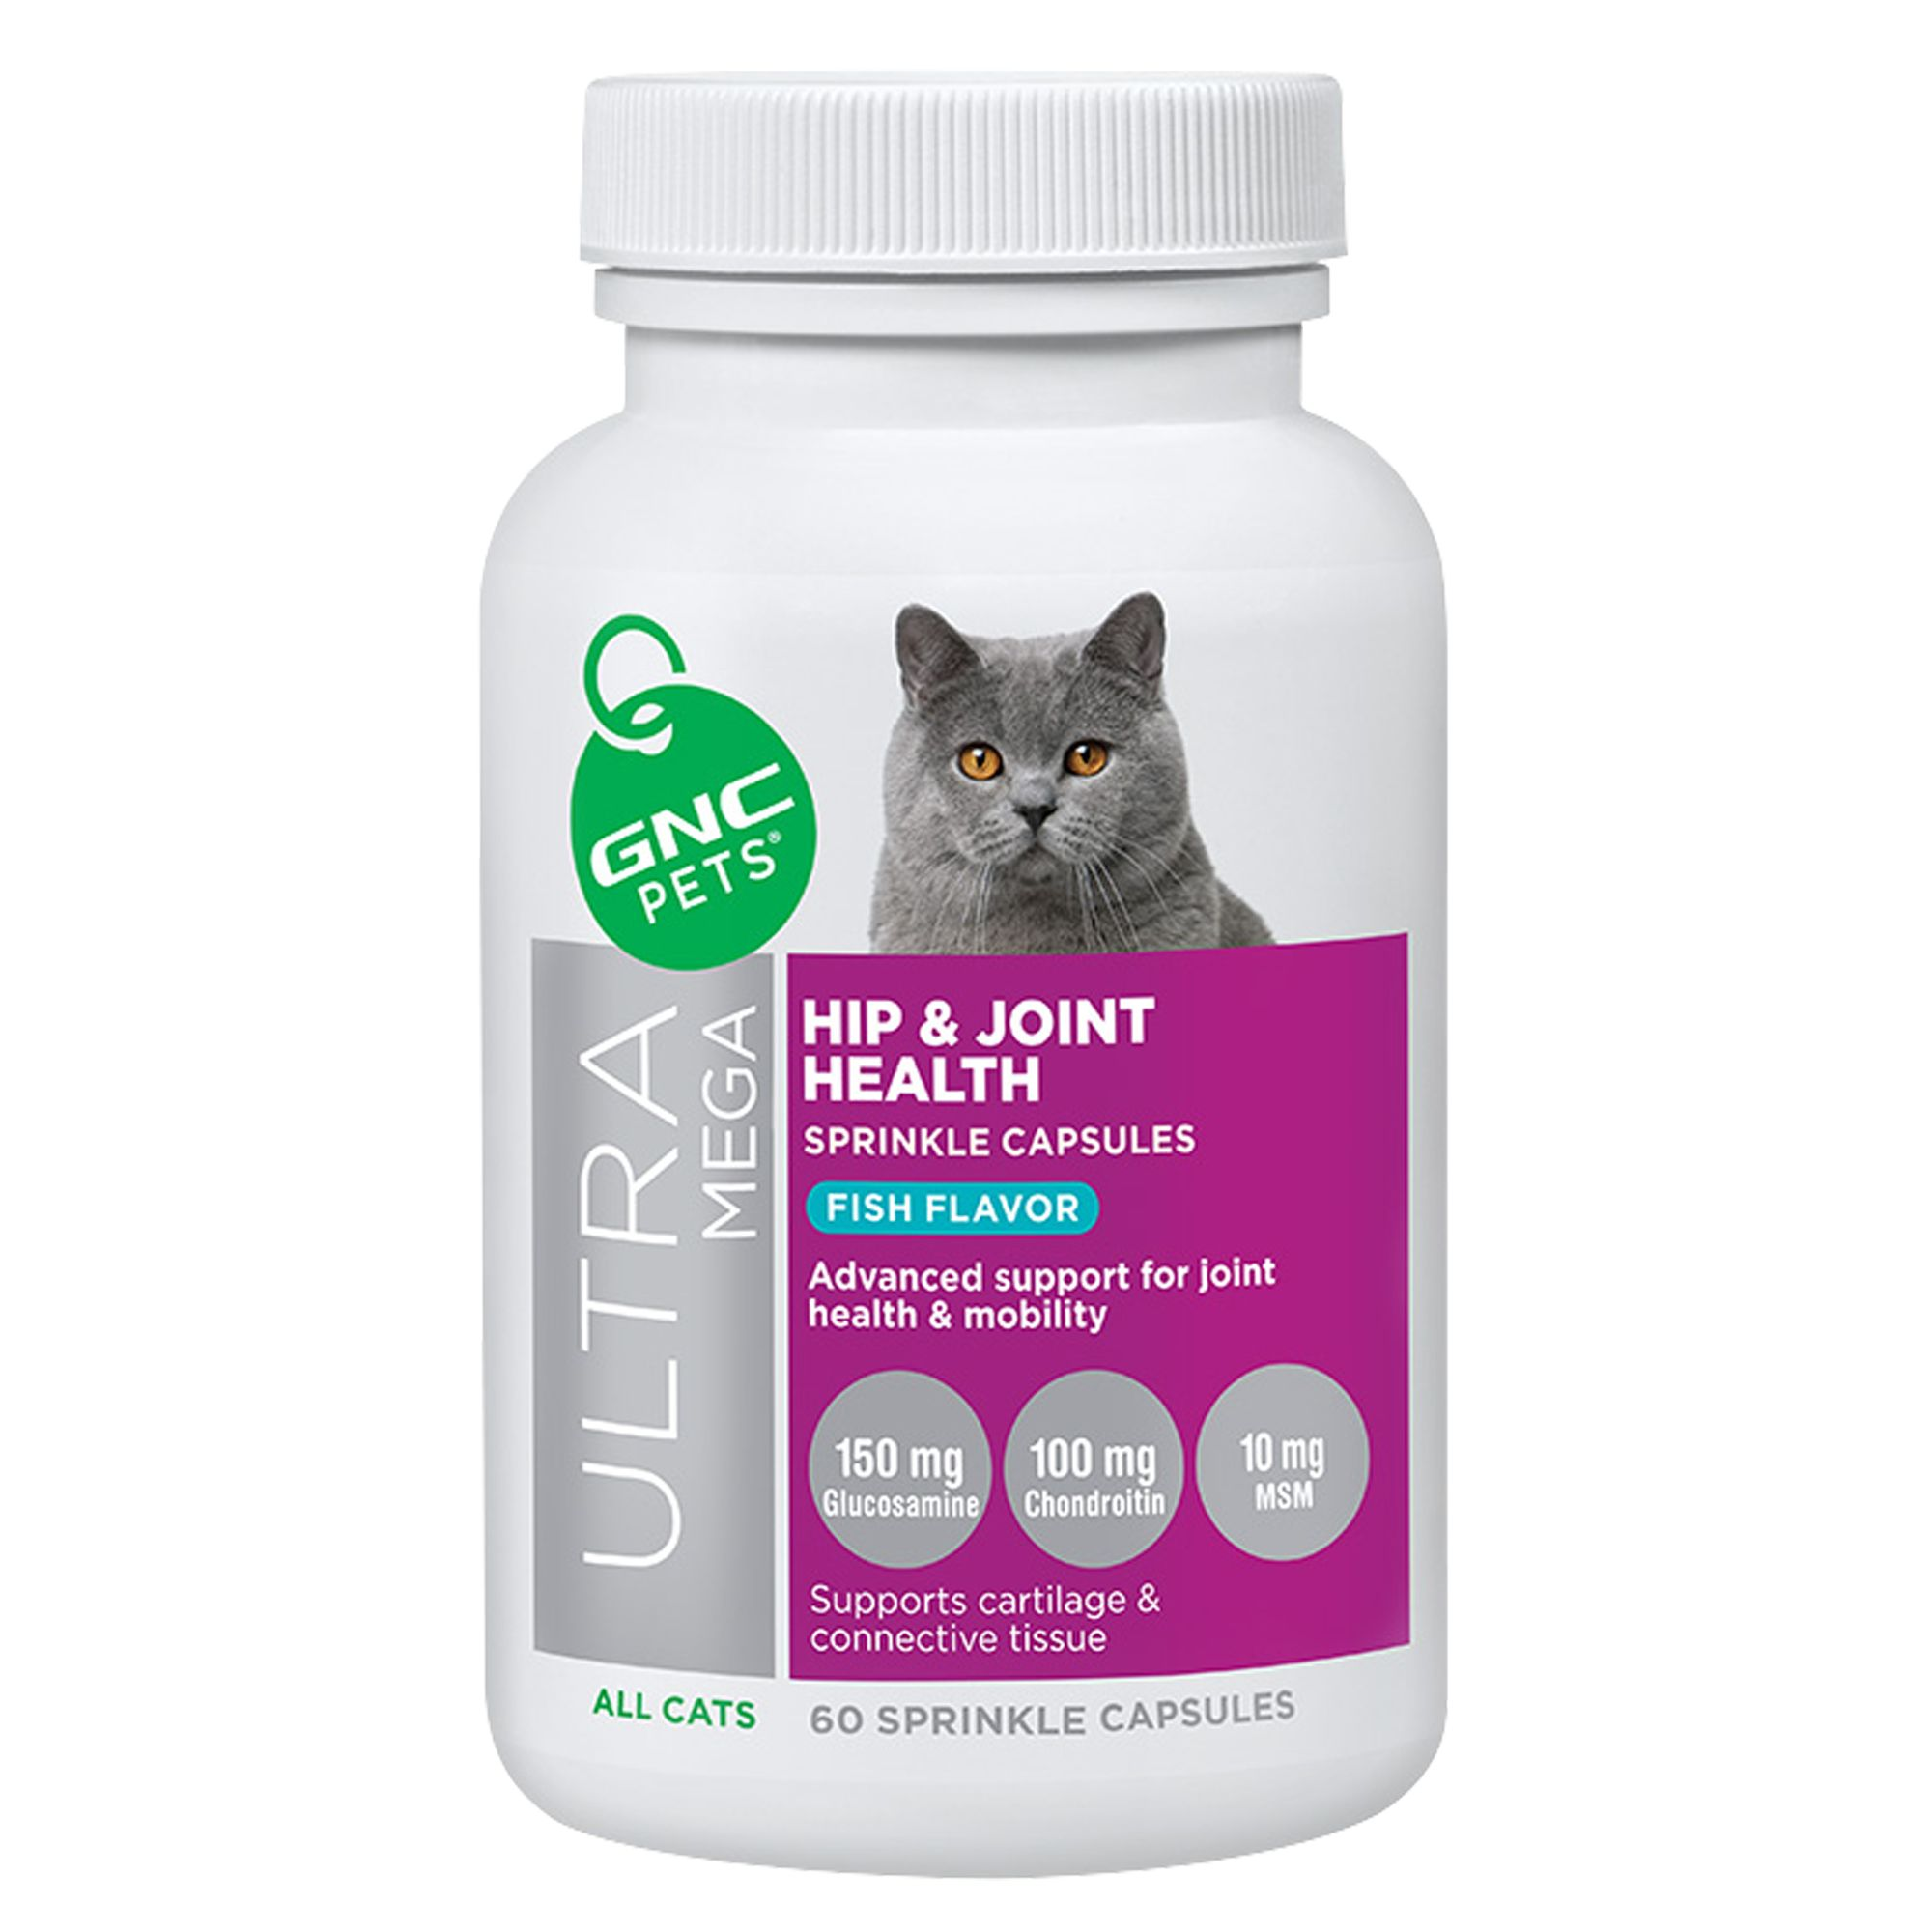 Gnc Pets Hip And Joint Health Cats